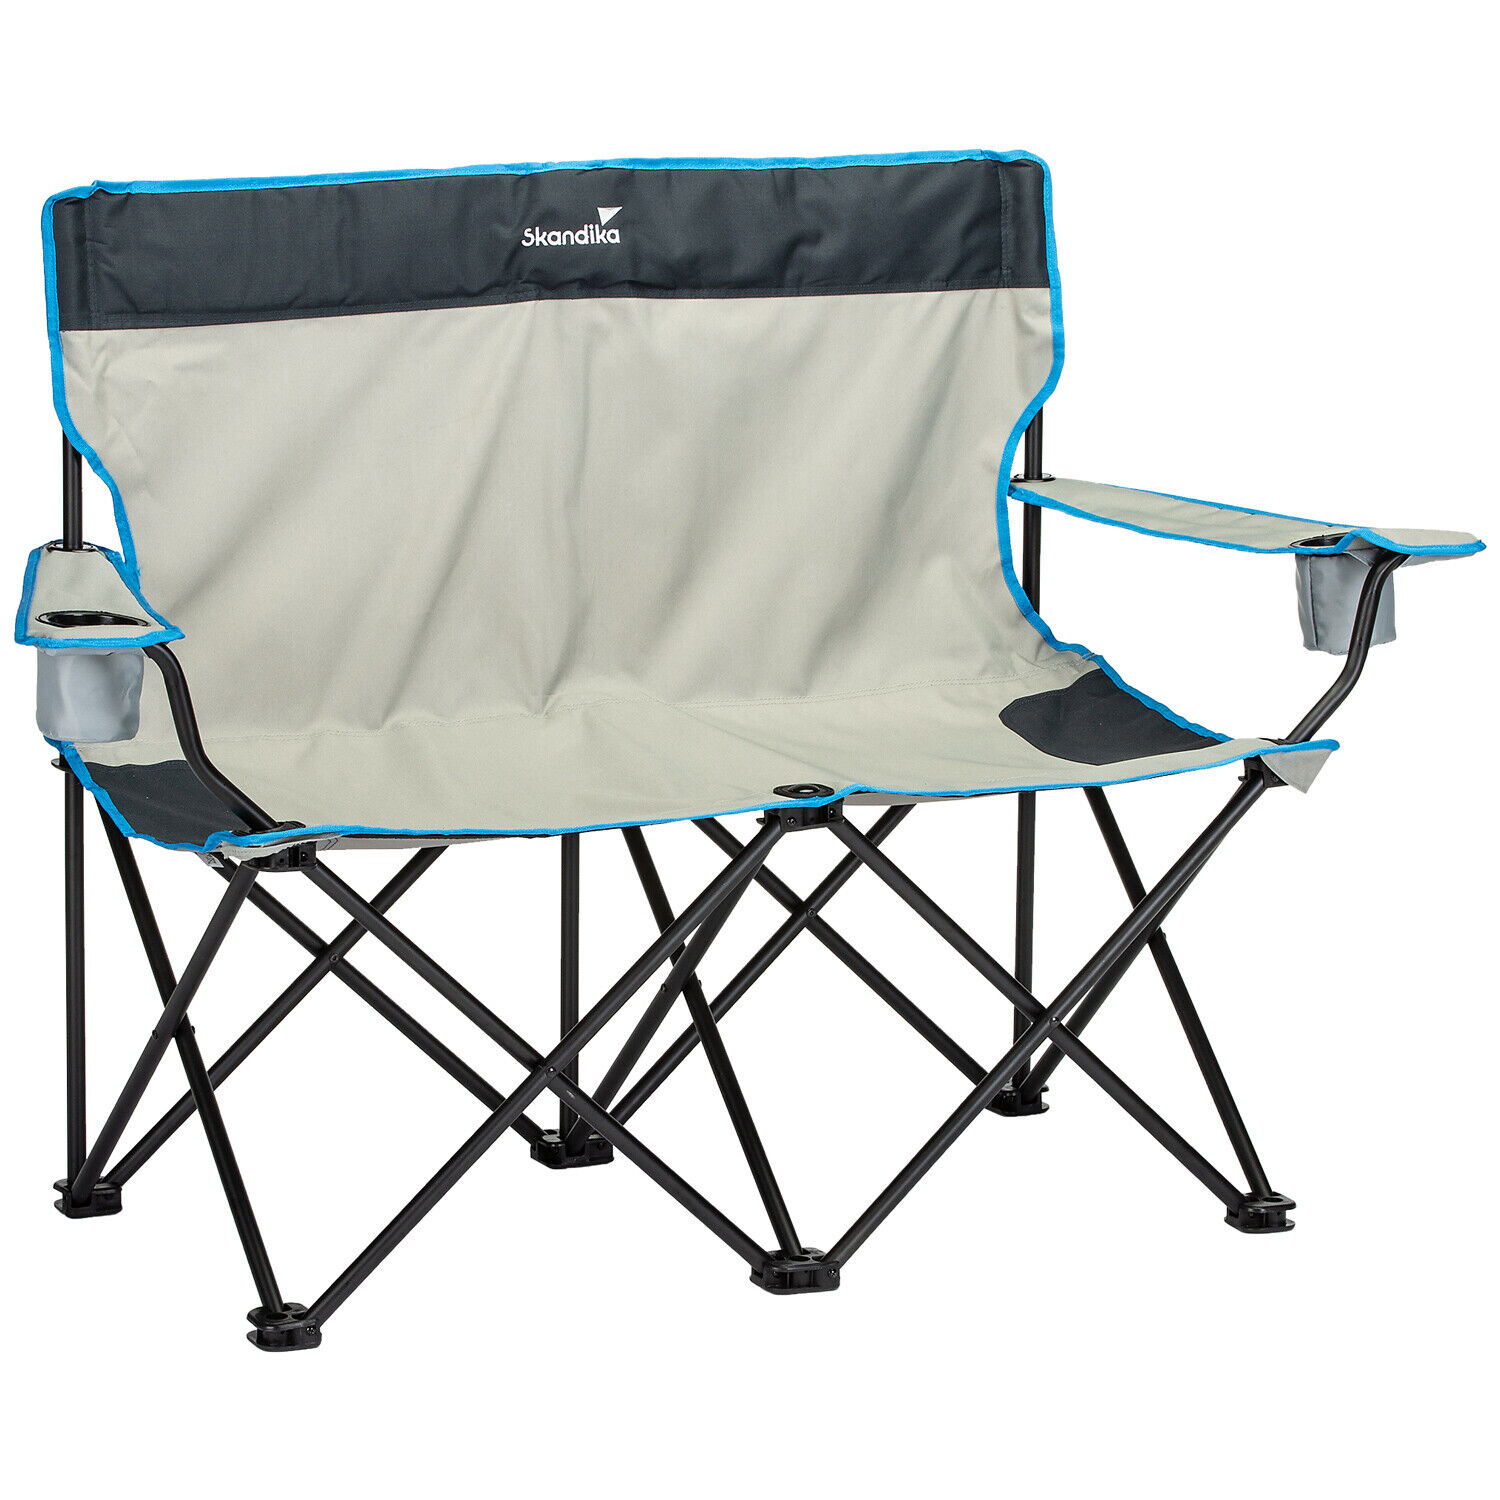 Skandika double folding chair camping chair Sitz bench 2 pers. max. 200 kg new